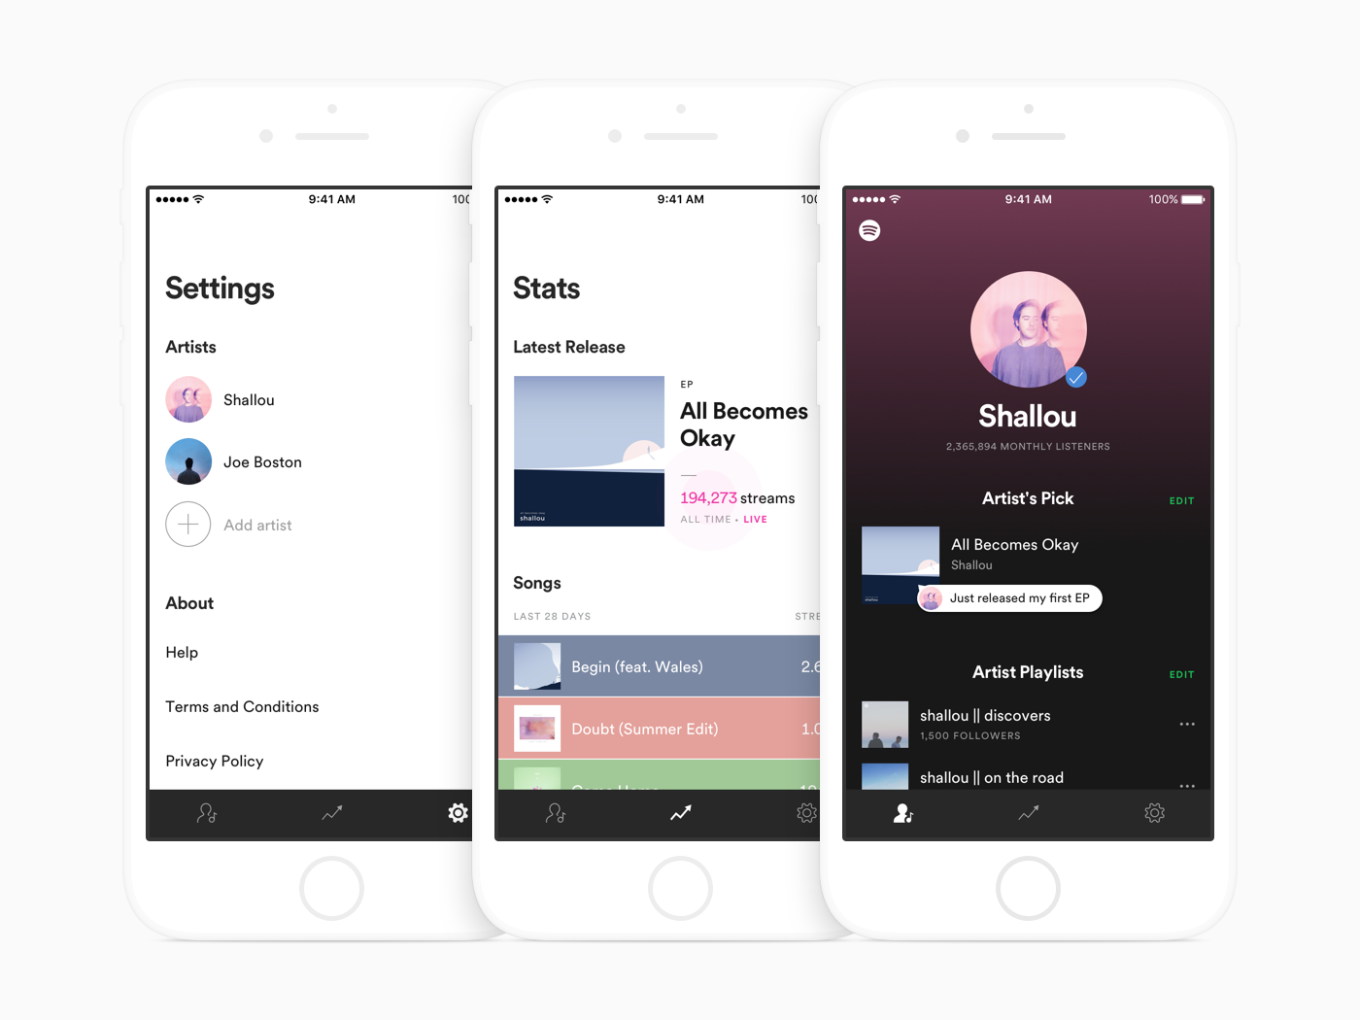 Spotify launches an app for artists with realtime